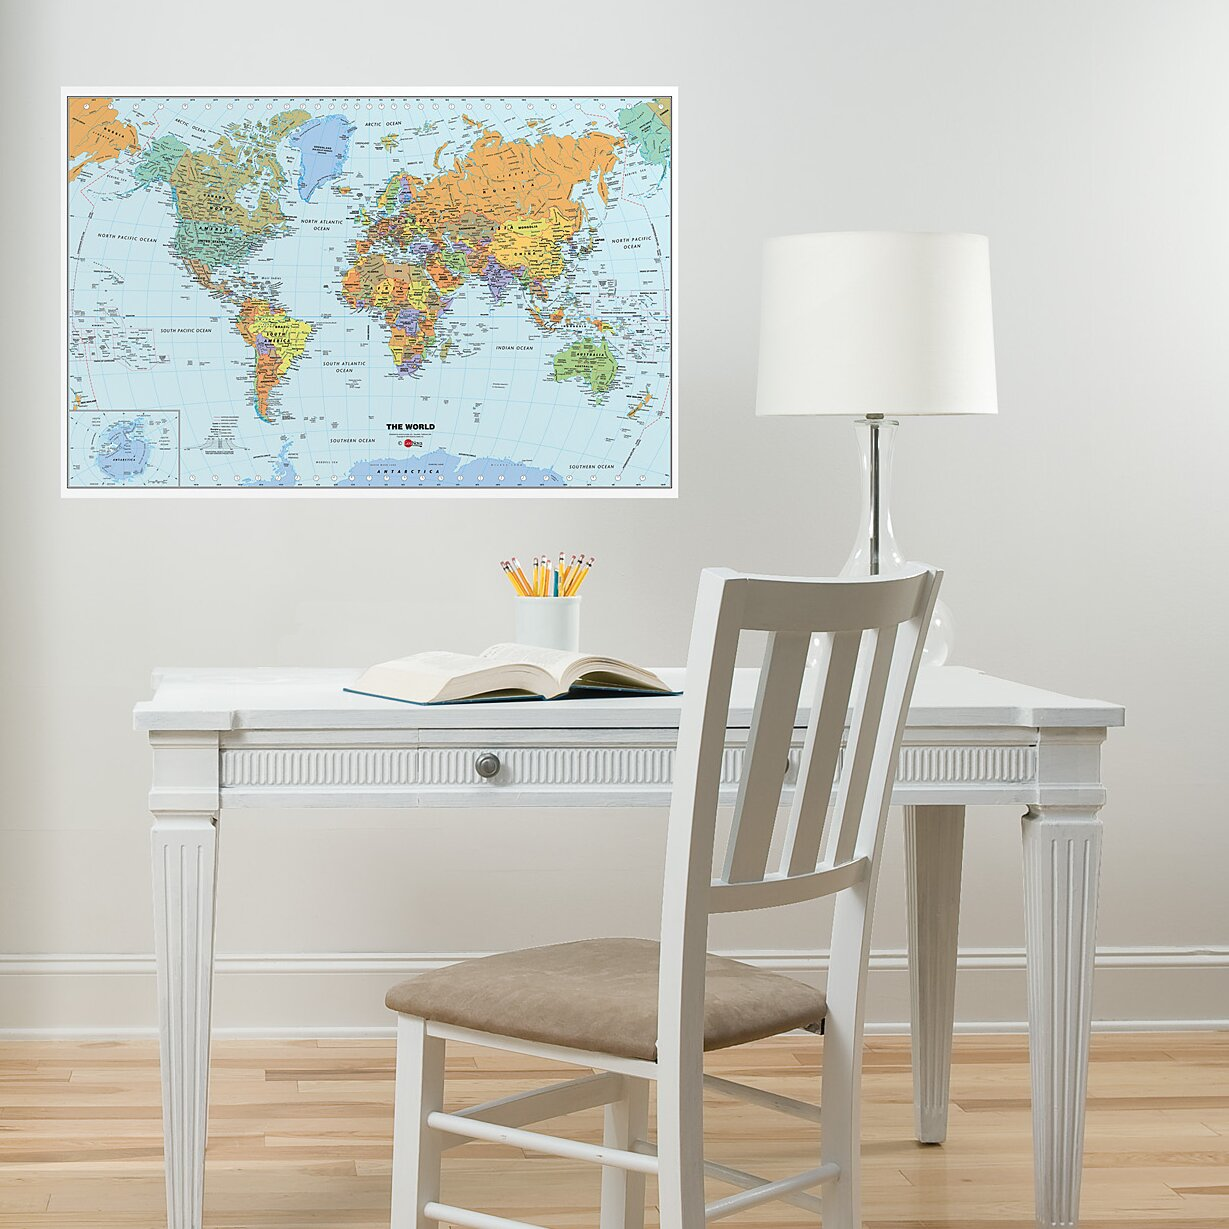 wallpops world dry erase map wall mural reviews wayfair ForDry Erase World Map Wall Mural